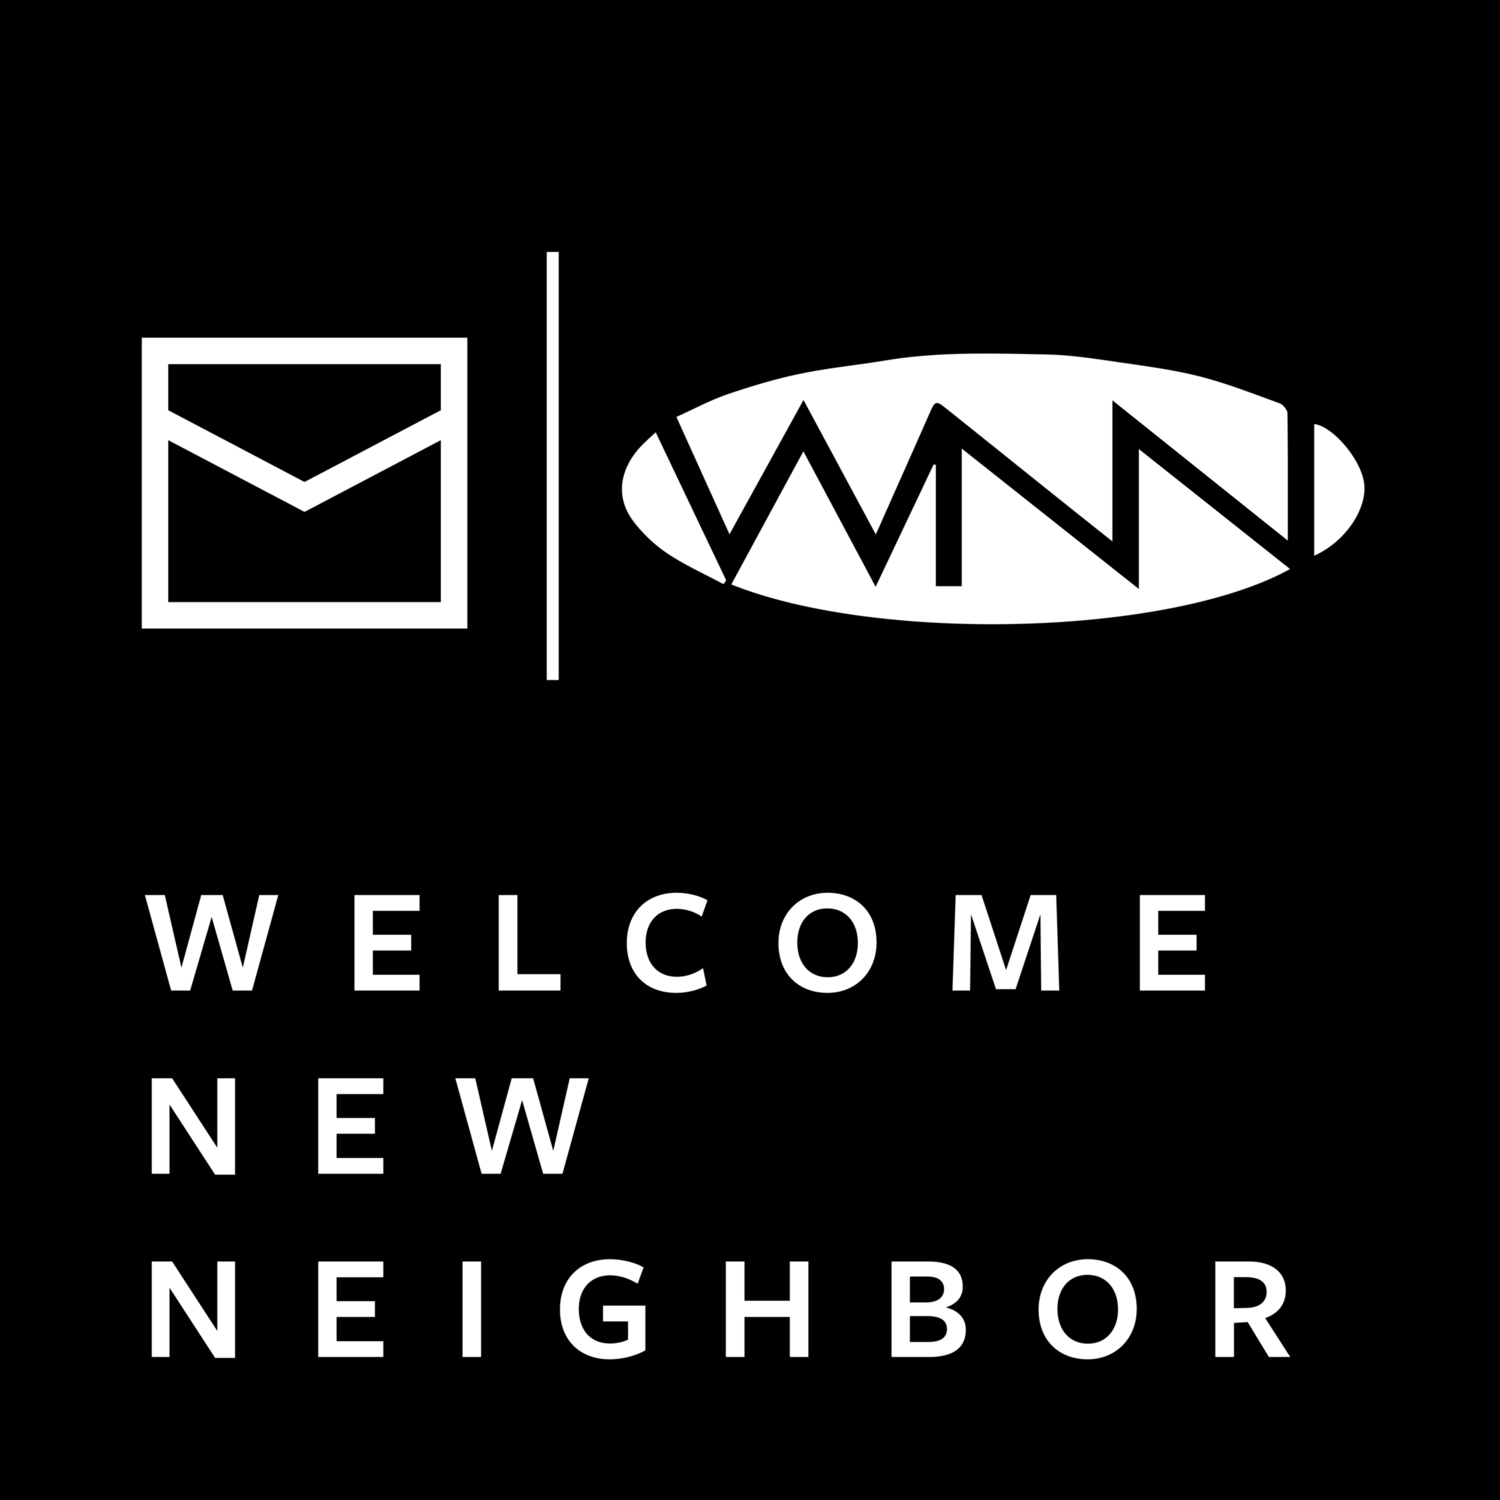 Welcome New Neighbor Inc.